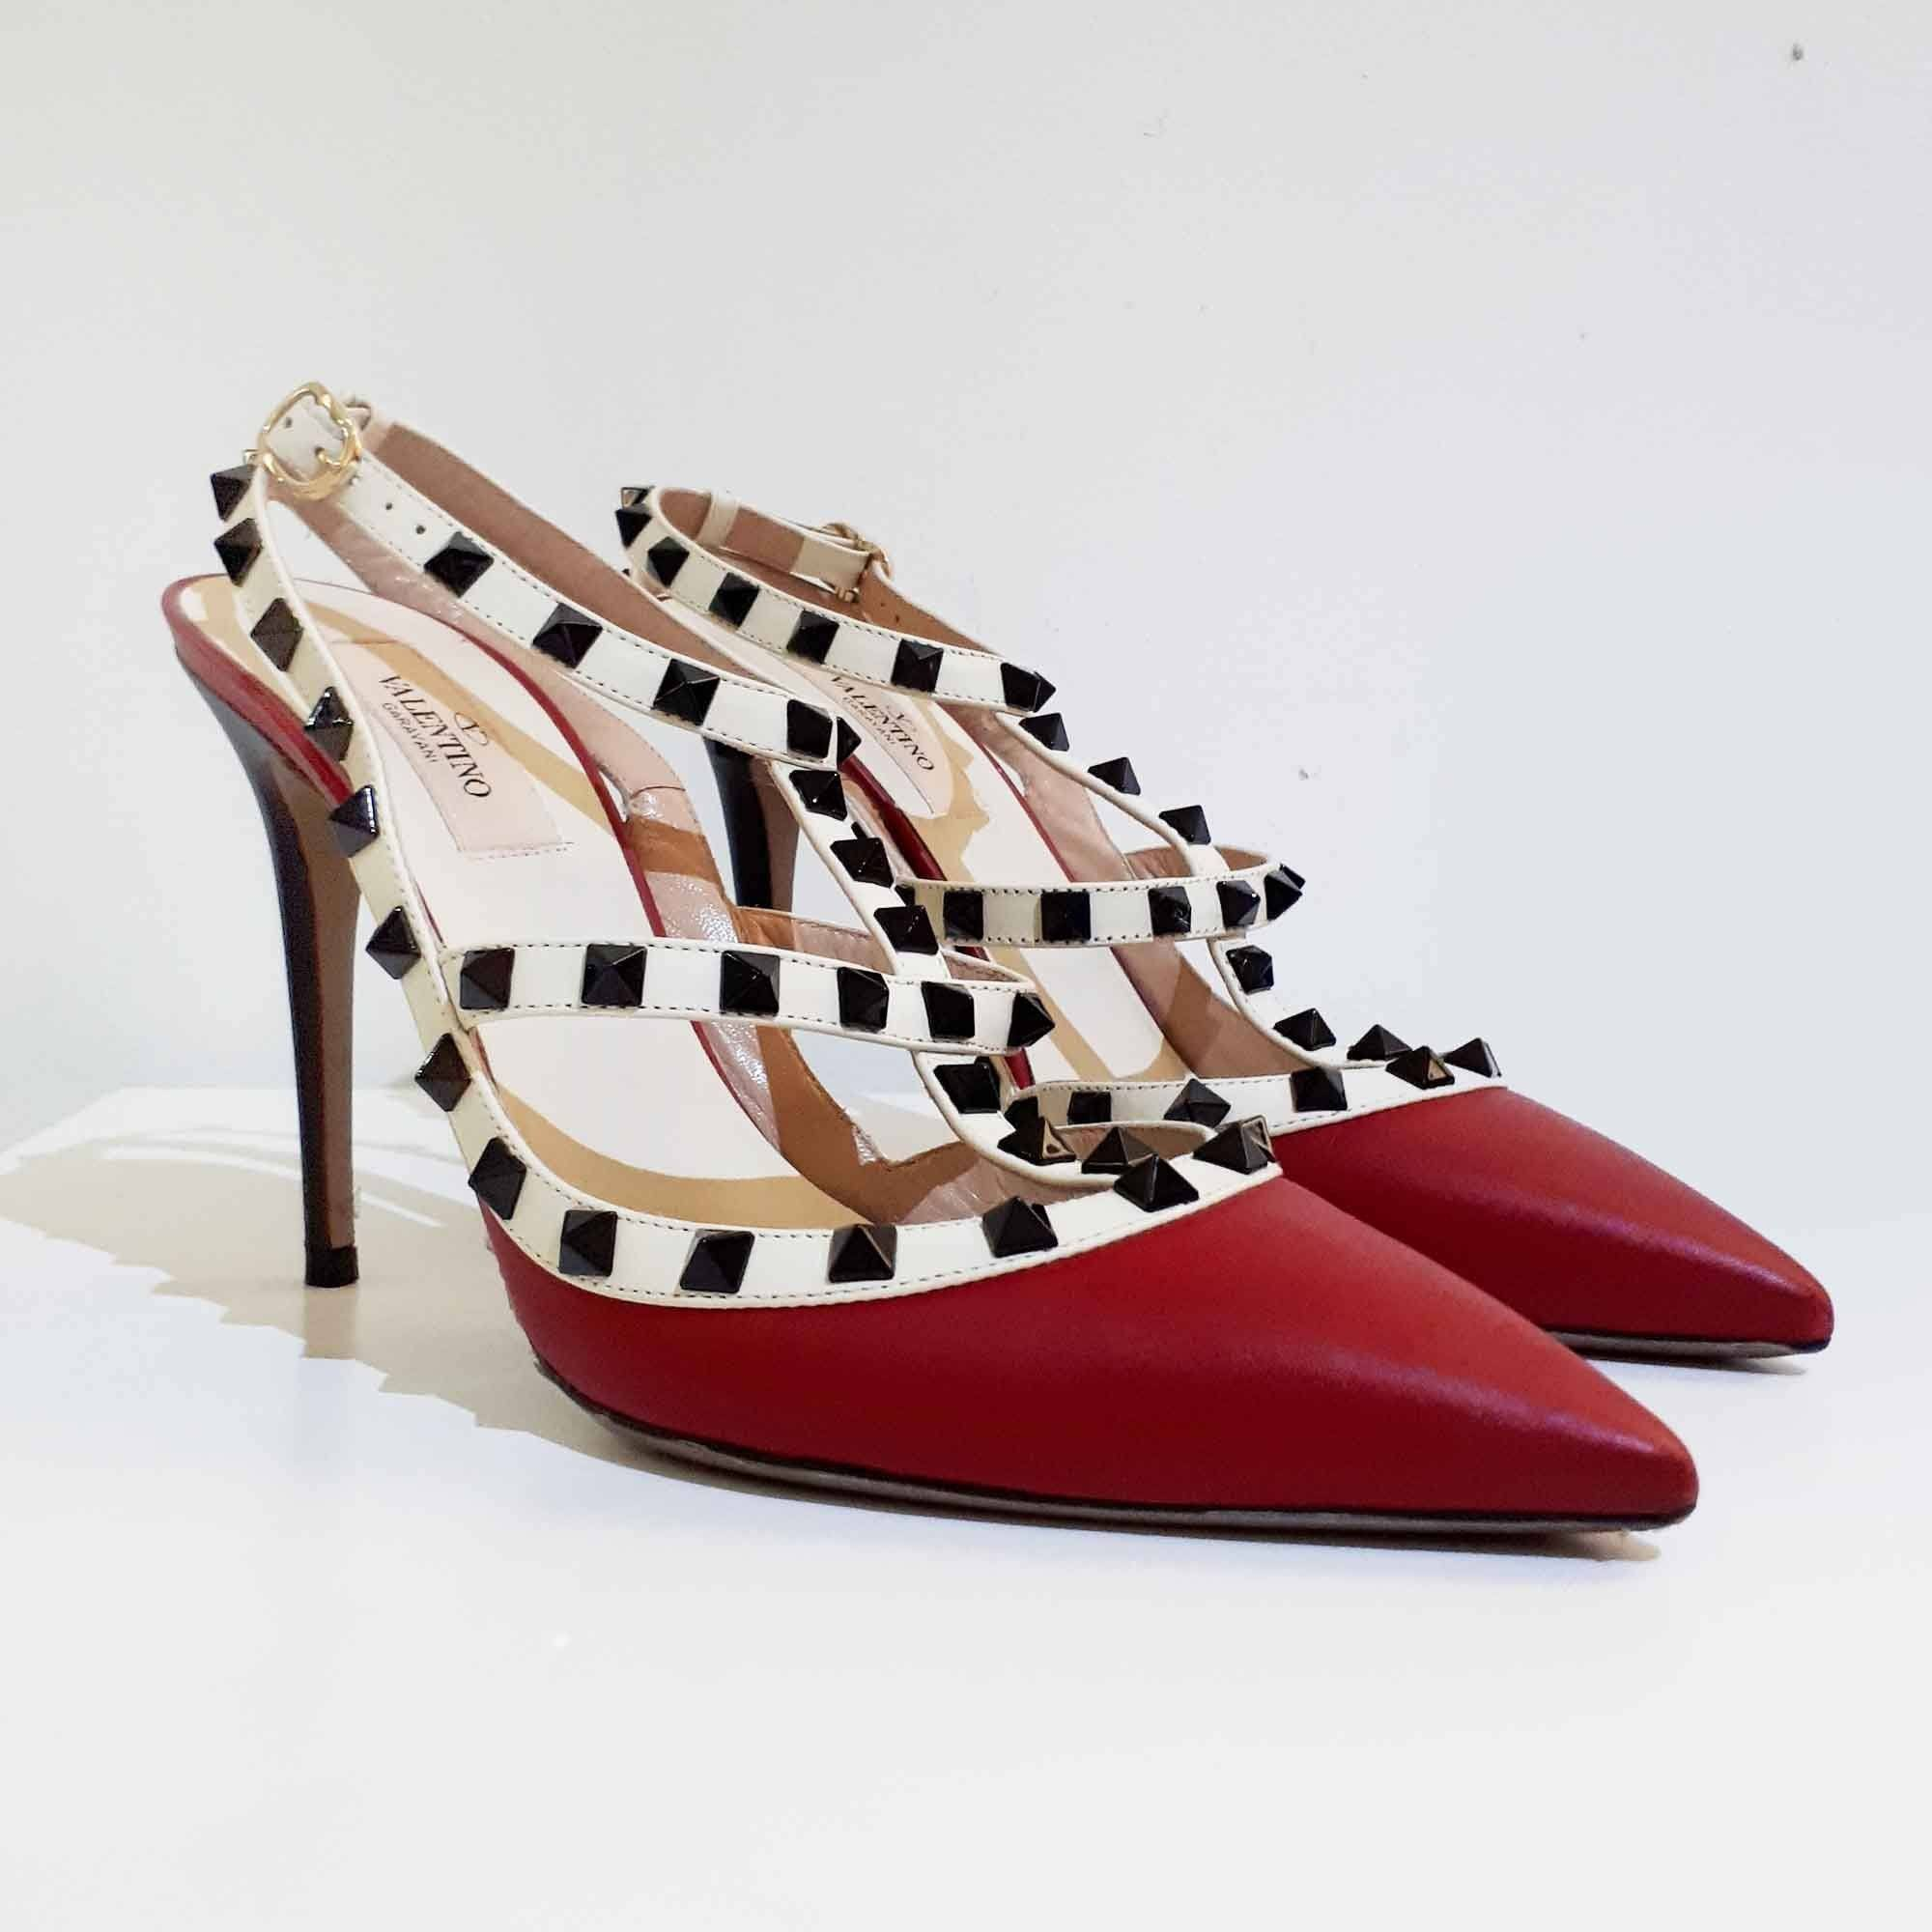 Valentino Red Rockstud Pumps